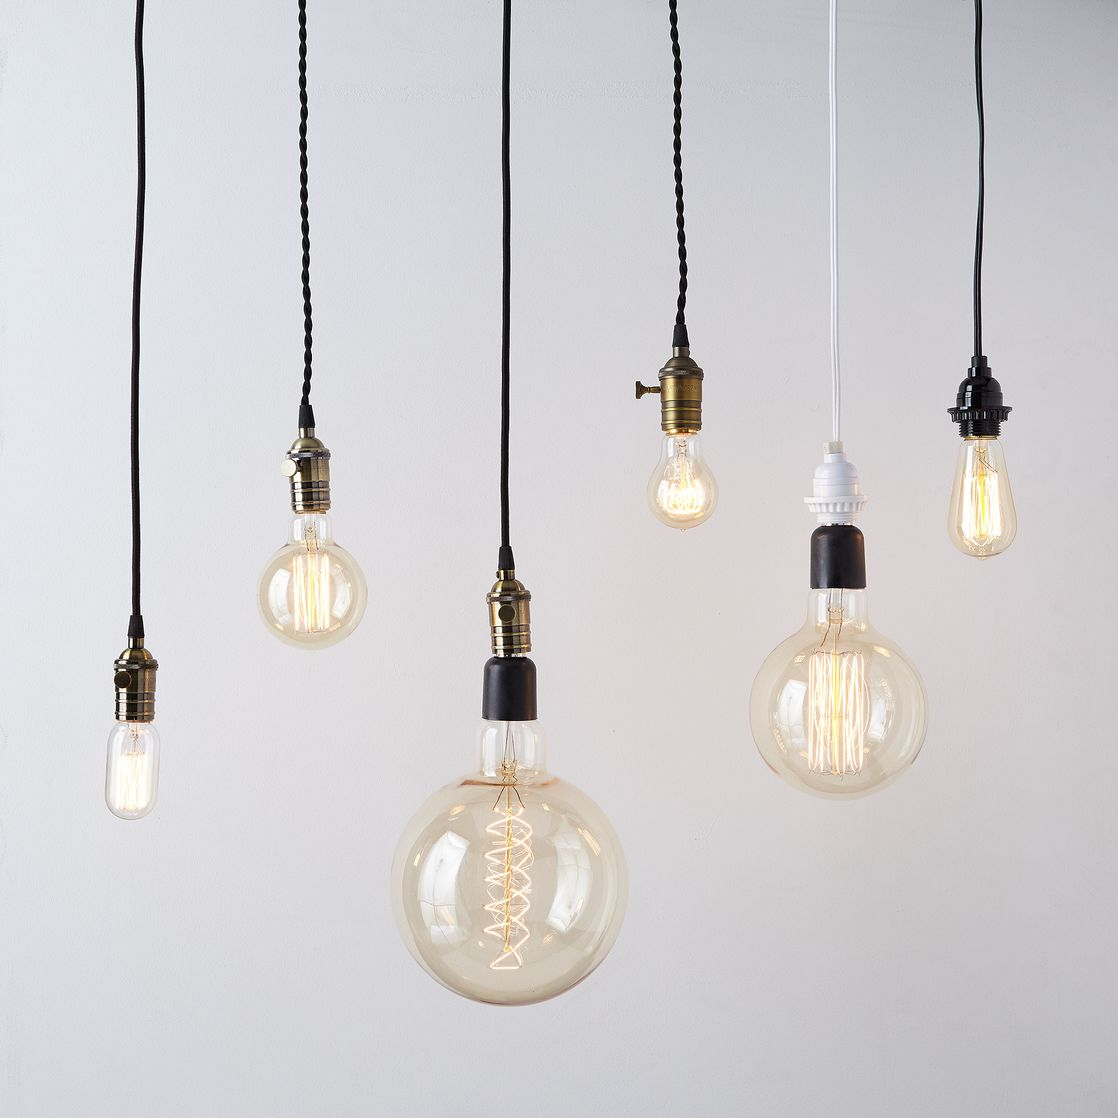 pendant filament bulbs - Decorative Light Bulbs